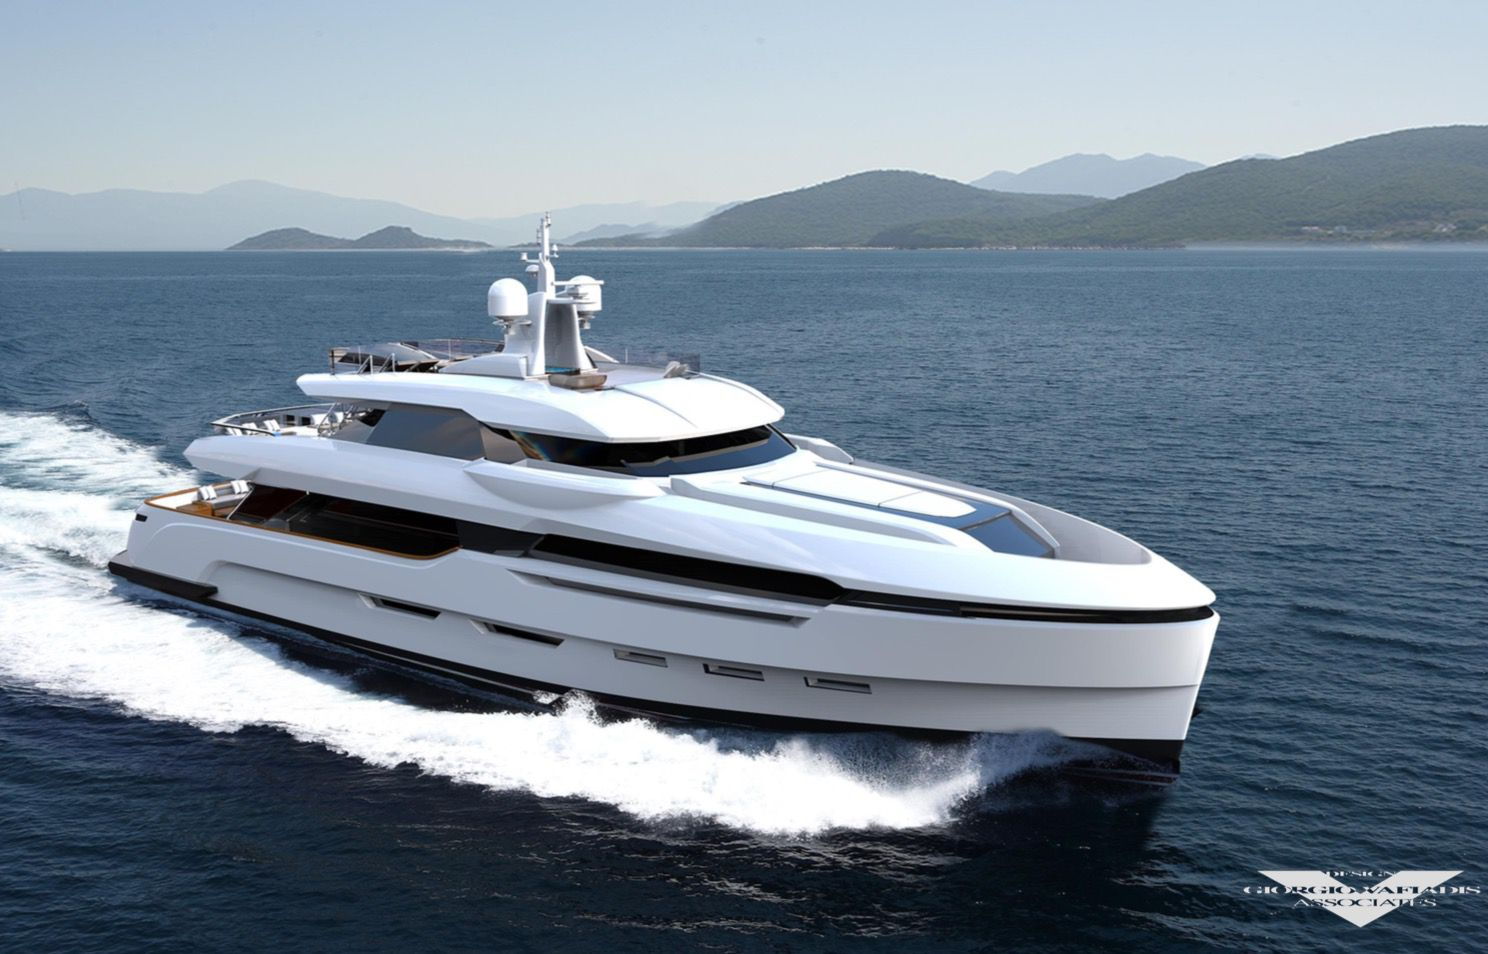 Luxury yacht for Sale | CCN 33m DOM by CCN - Cerri Cantieri Navali